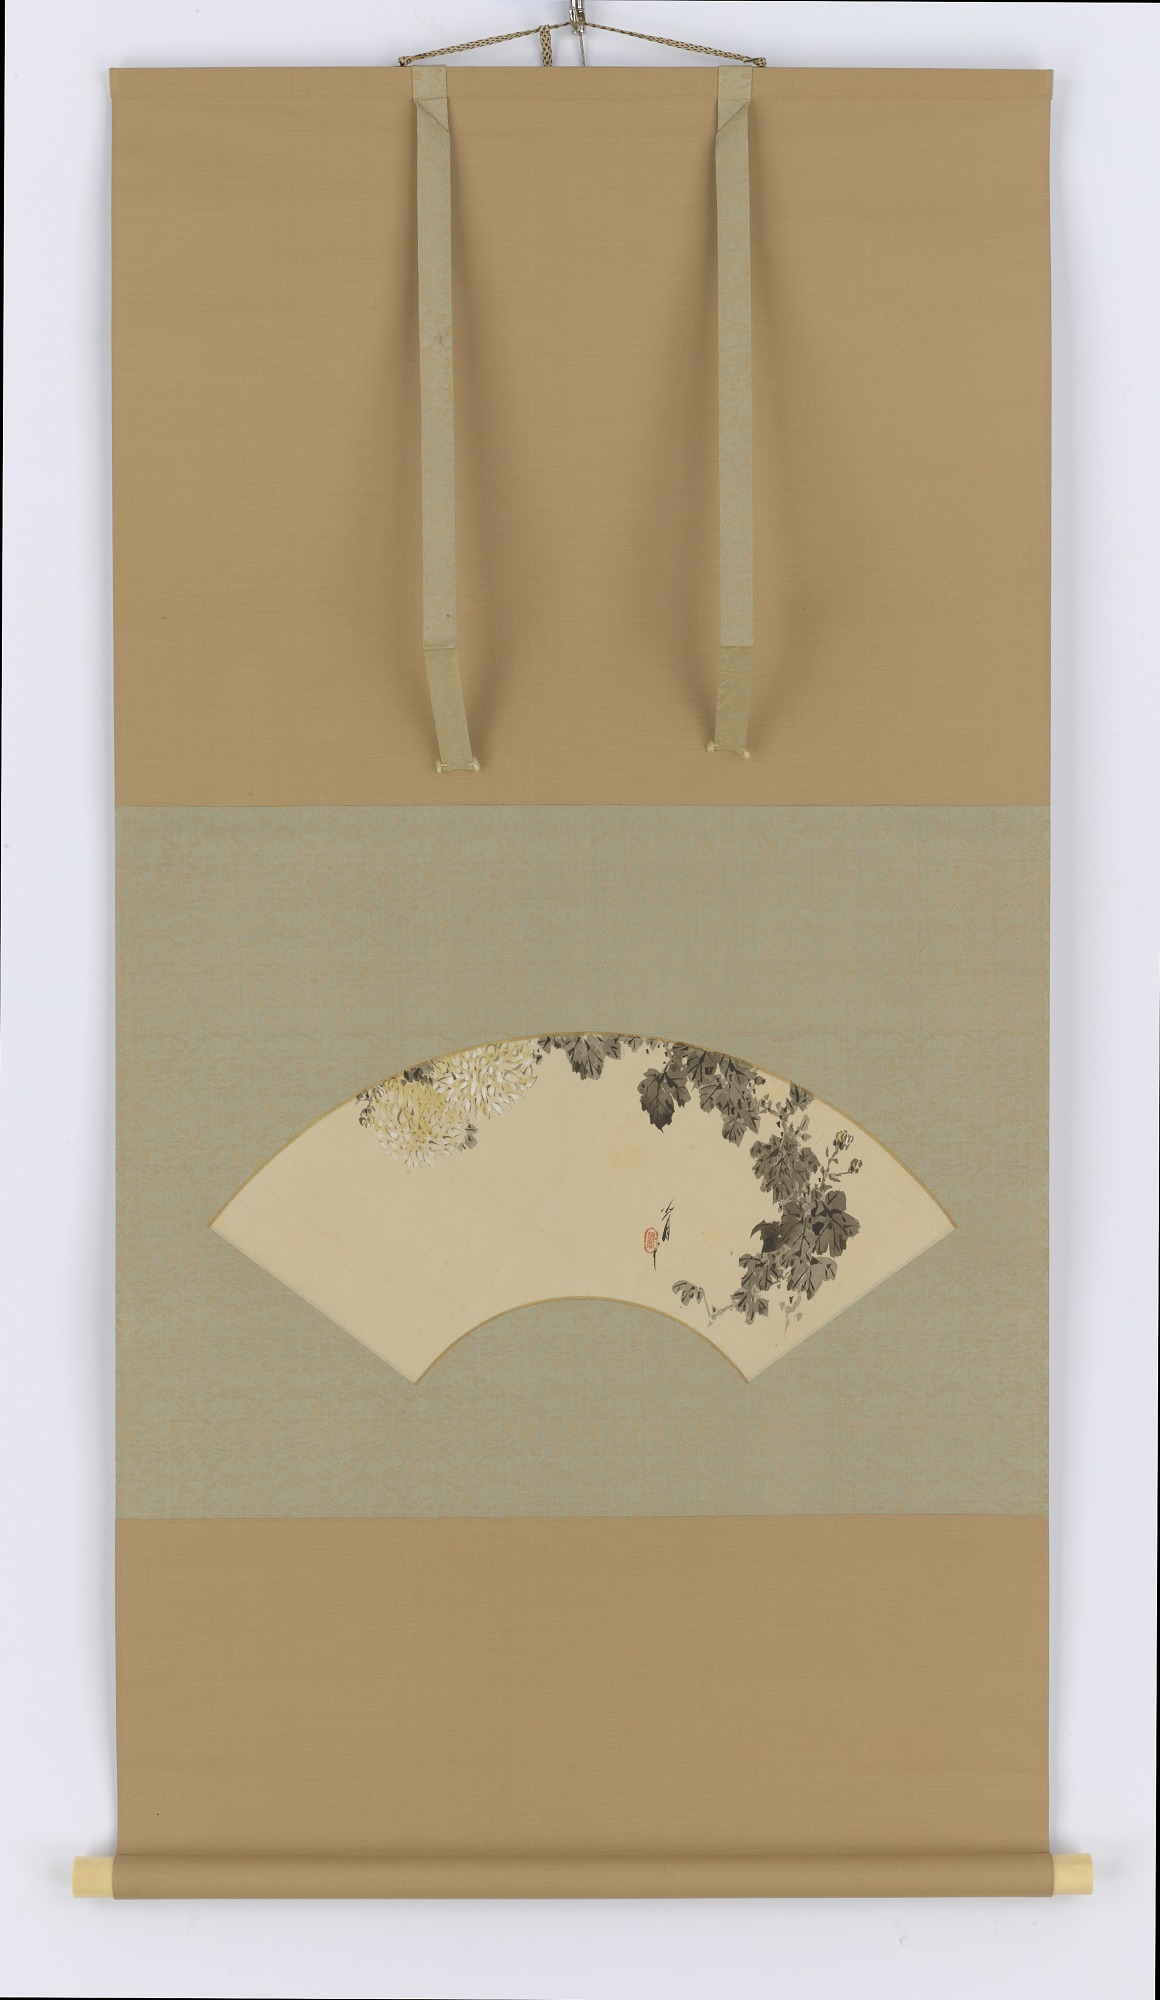 Painted fan with design of chrysanthemum flowers mounted on a hanging scroll.